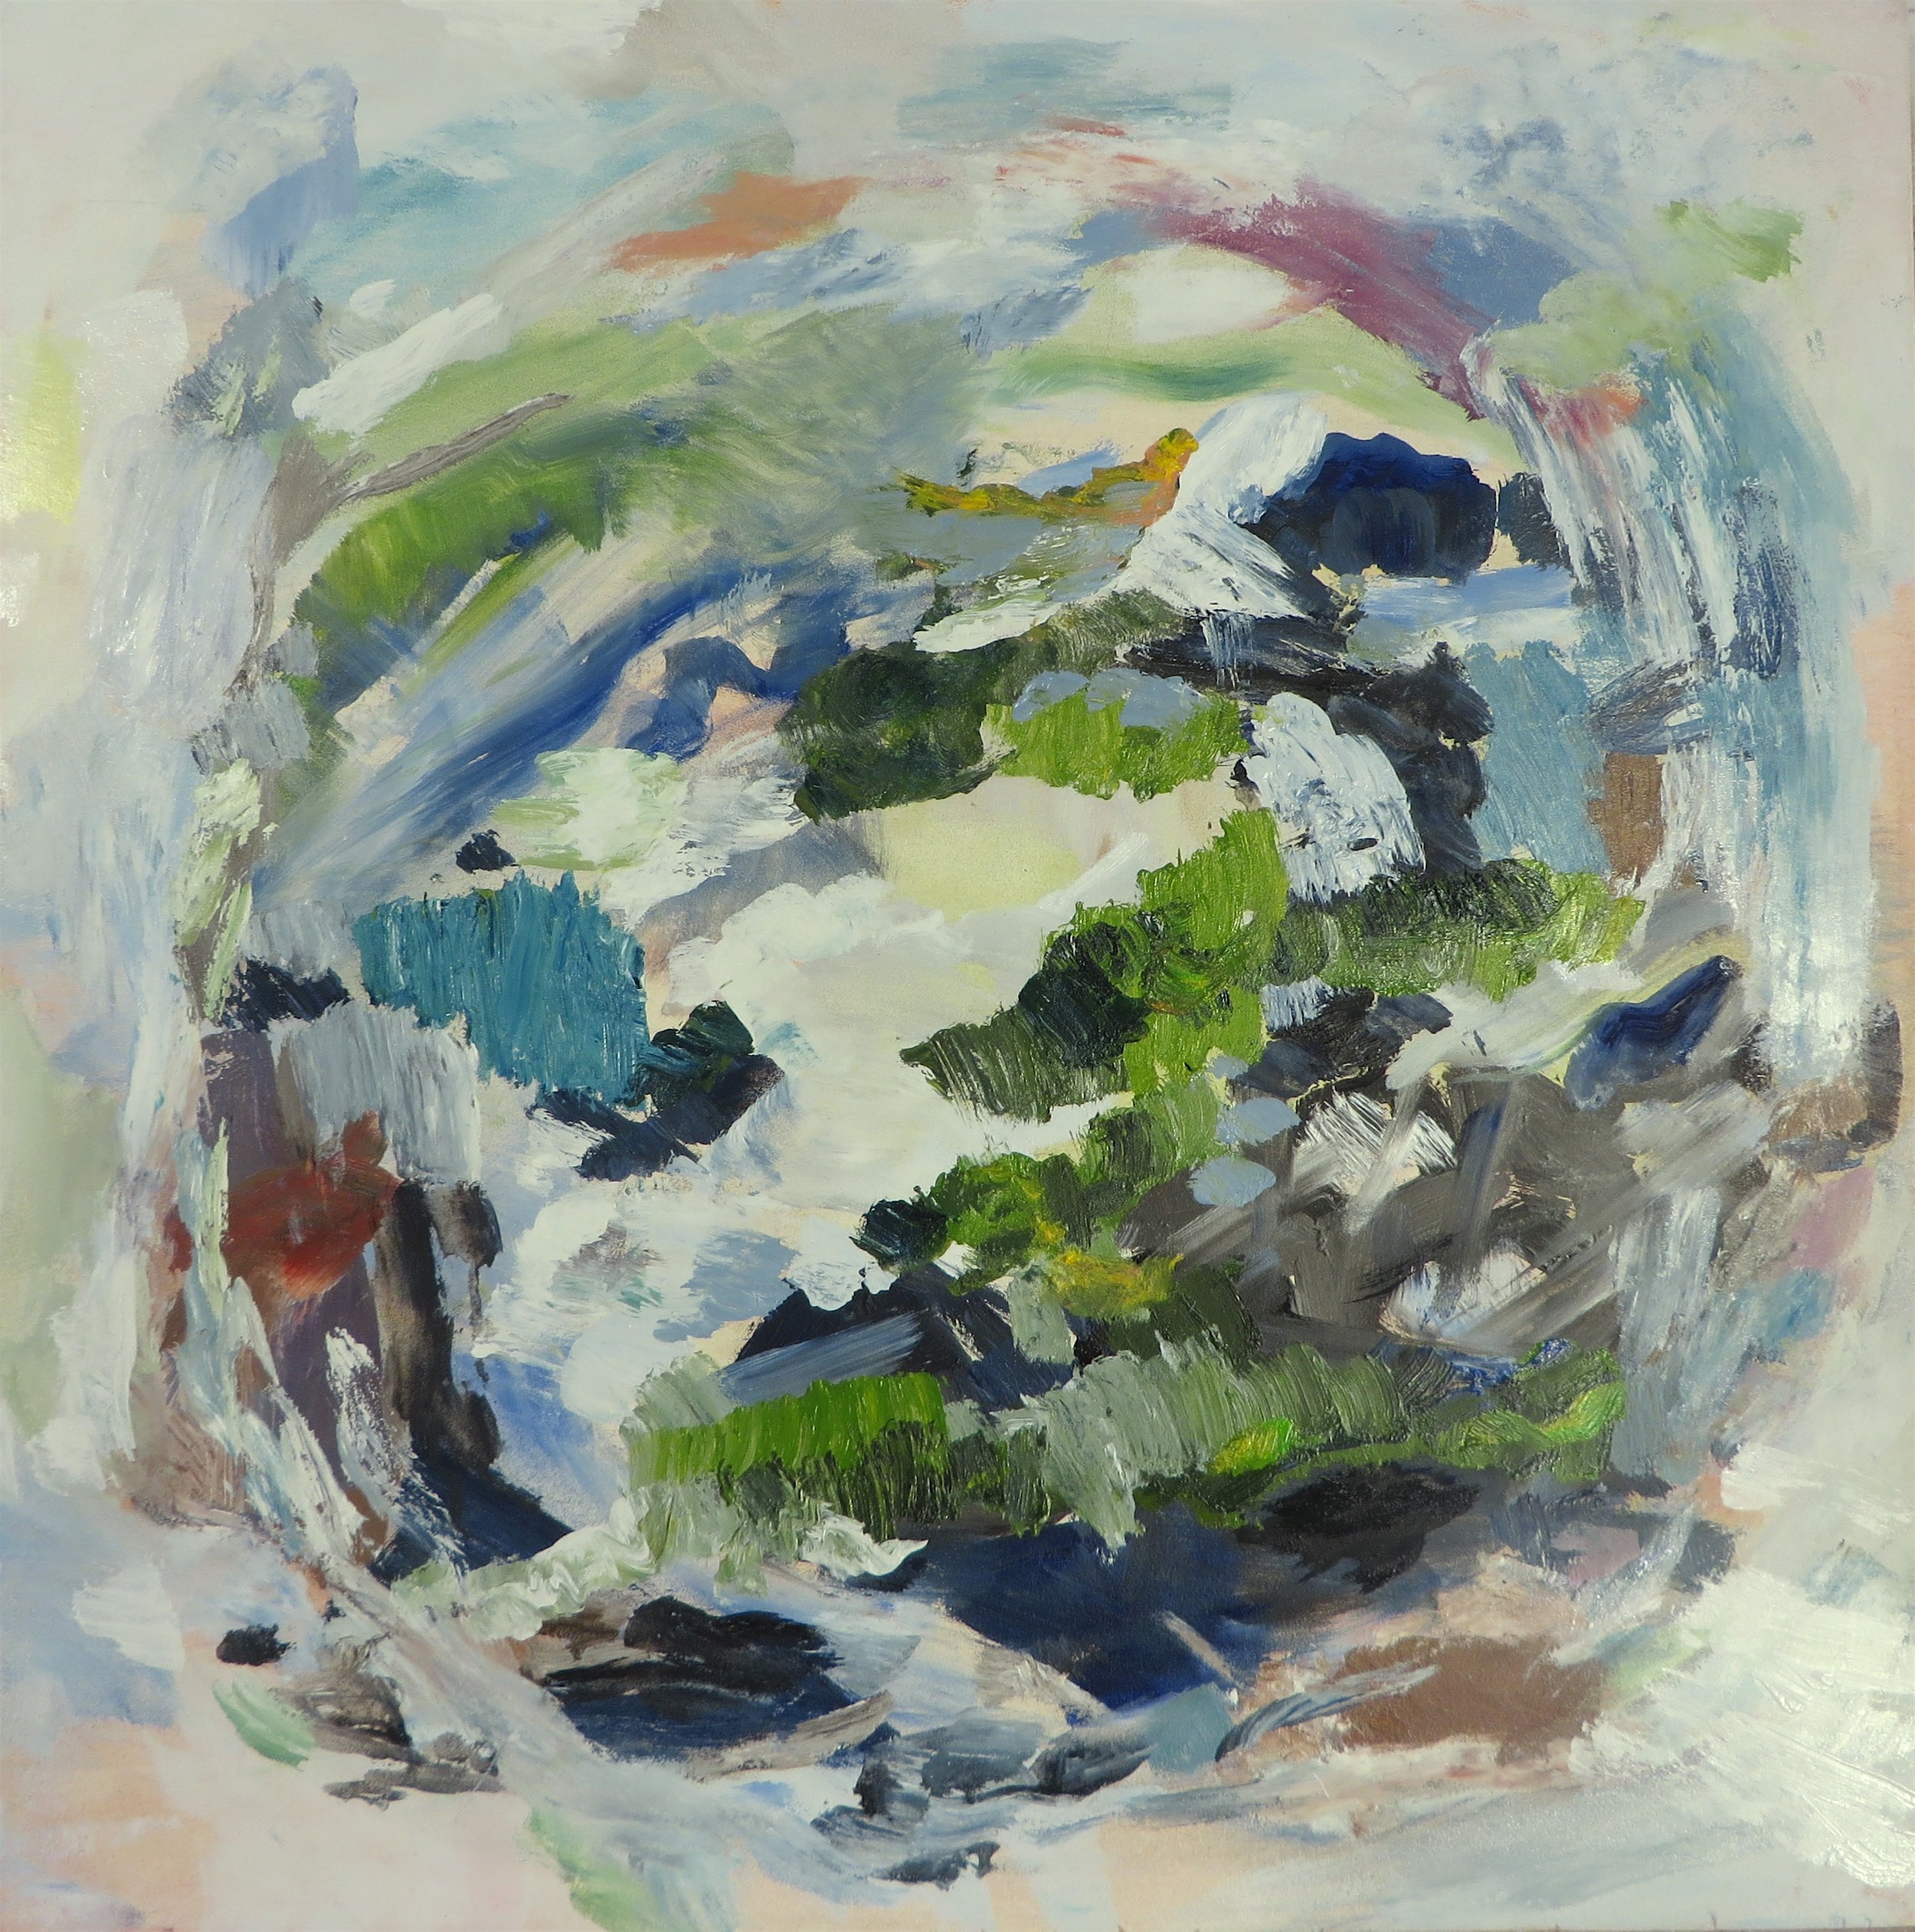 Earth Series 2, 2014